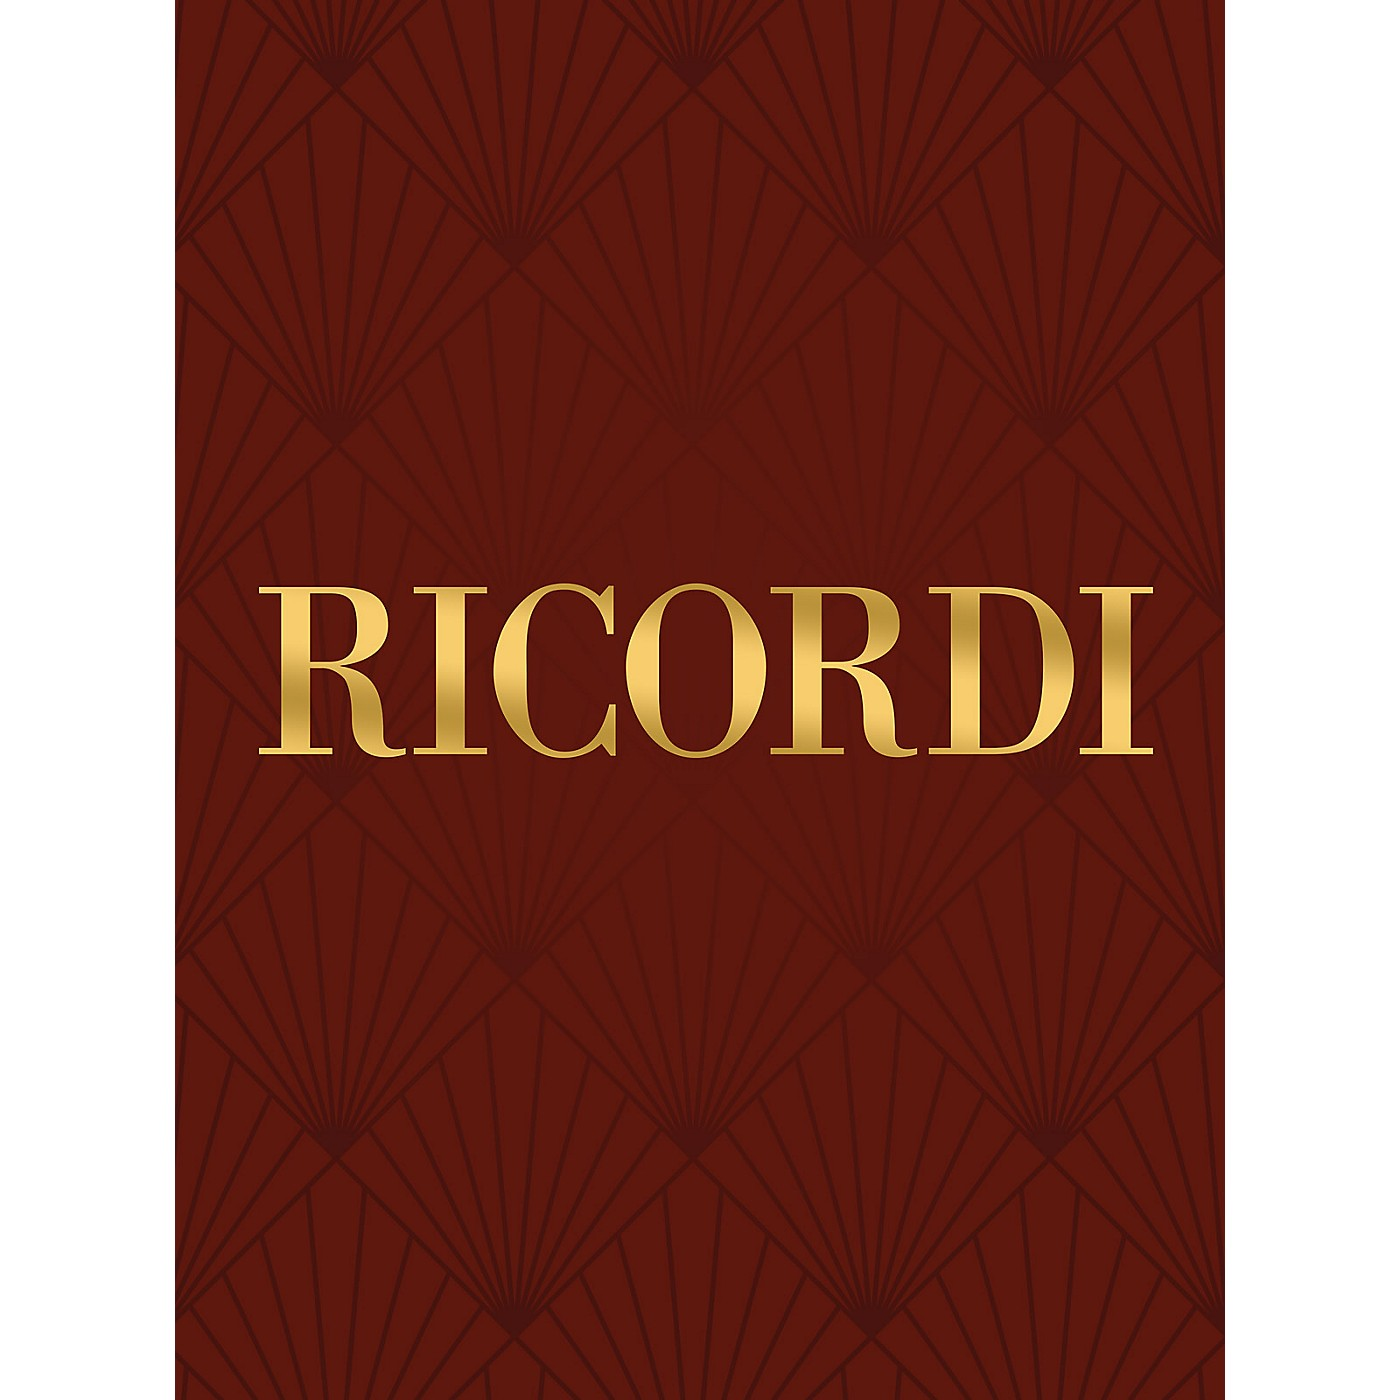 Ricordi Romance, Op. 50 (Recorder Solo) Recorder Series by Ludwig van Beethoven Edited by Giuliano Gorni thumbnail